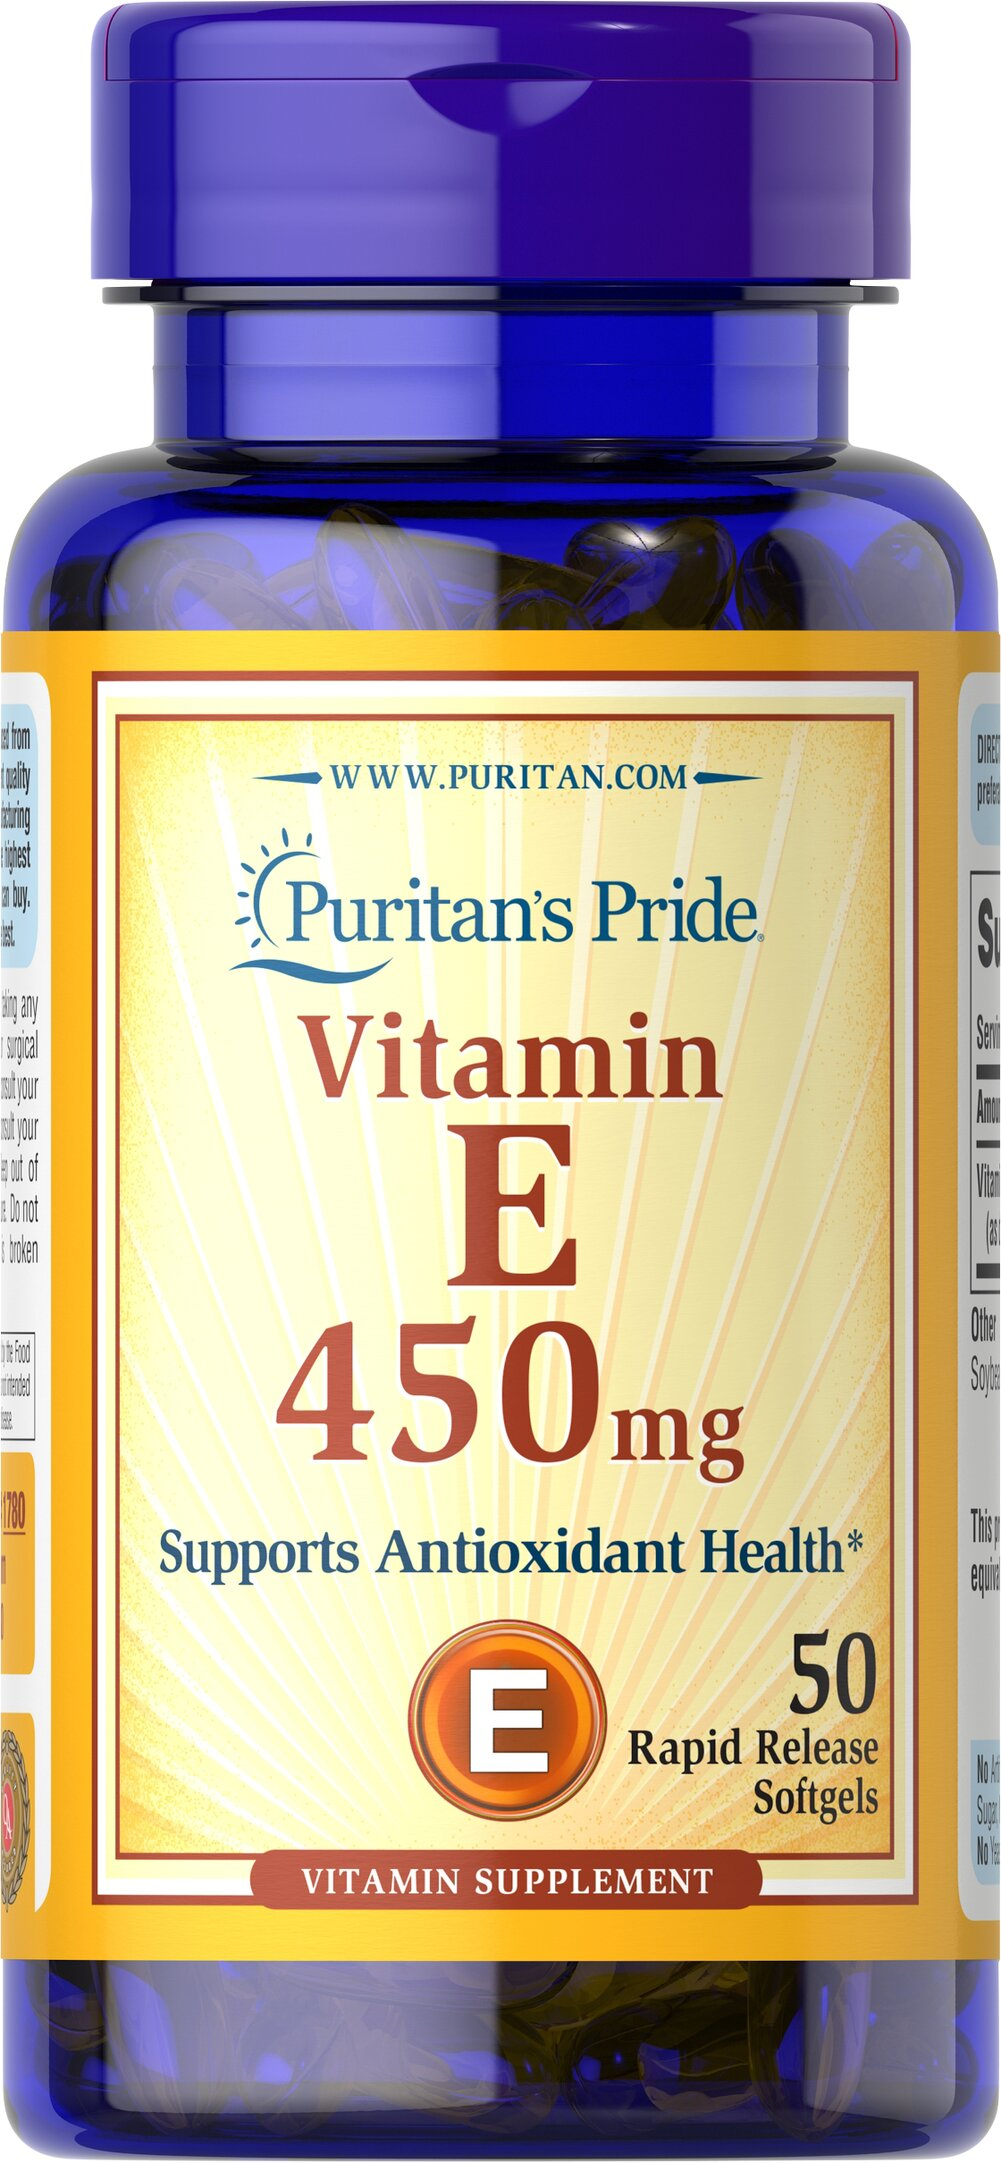 Vitamin E-1000 IU <p>Features dl-Alpha Vitamin E, a synthetic form of Vitamin E</p><p>Promotes heart and circulatory health**</p><p>Contributes to healthy skin and immune function**</p><p>Rapid release liquid softgels are easy to swallow</p><p>One a day formula</p> 50 Softgels 1000 IU $10.99